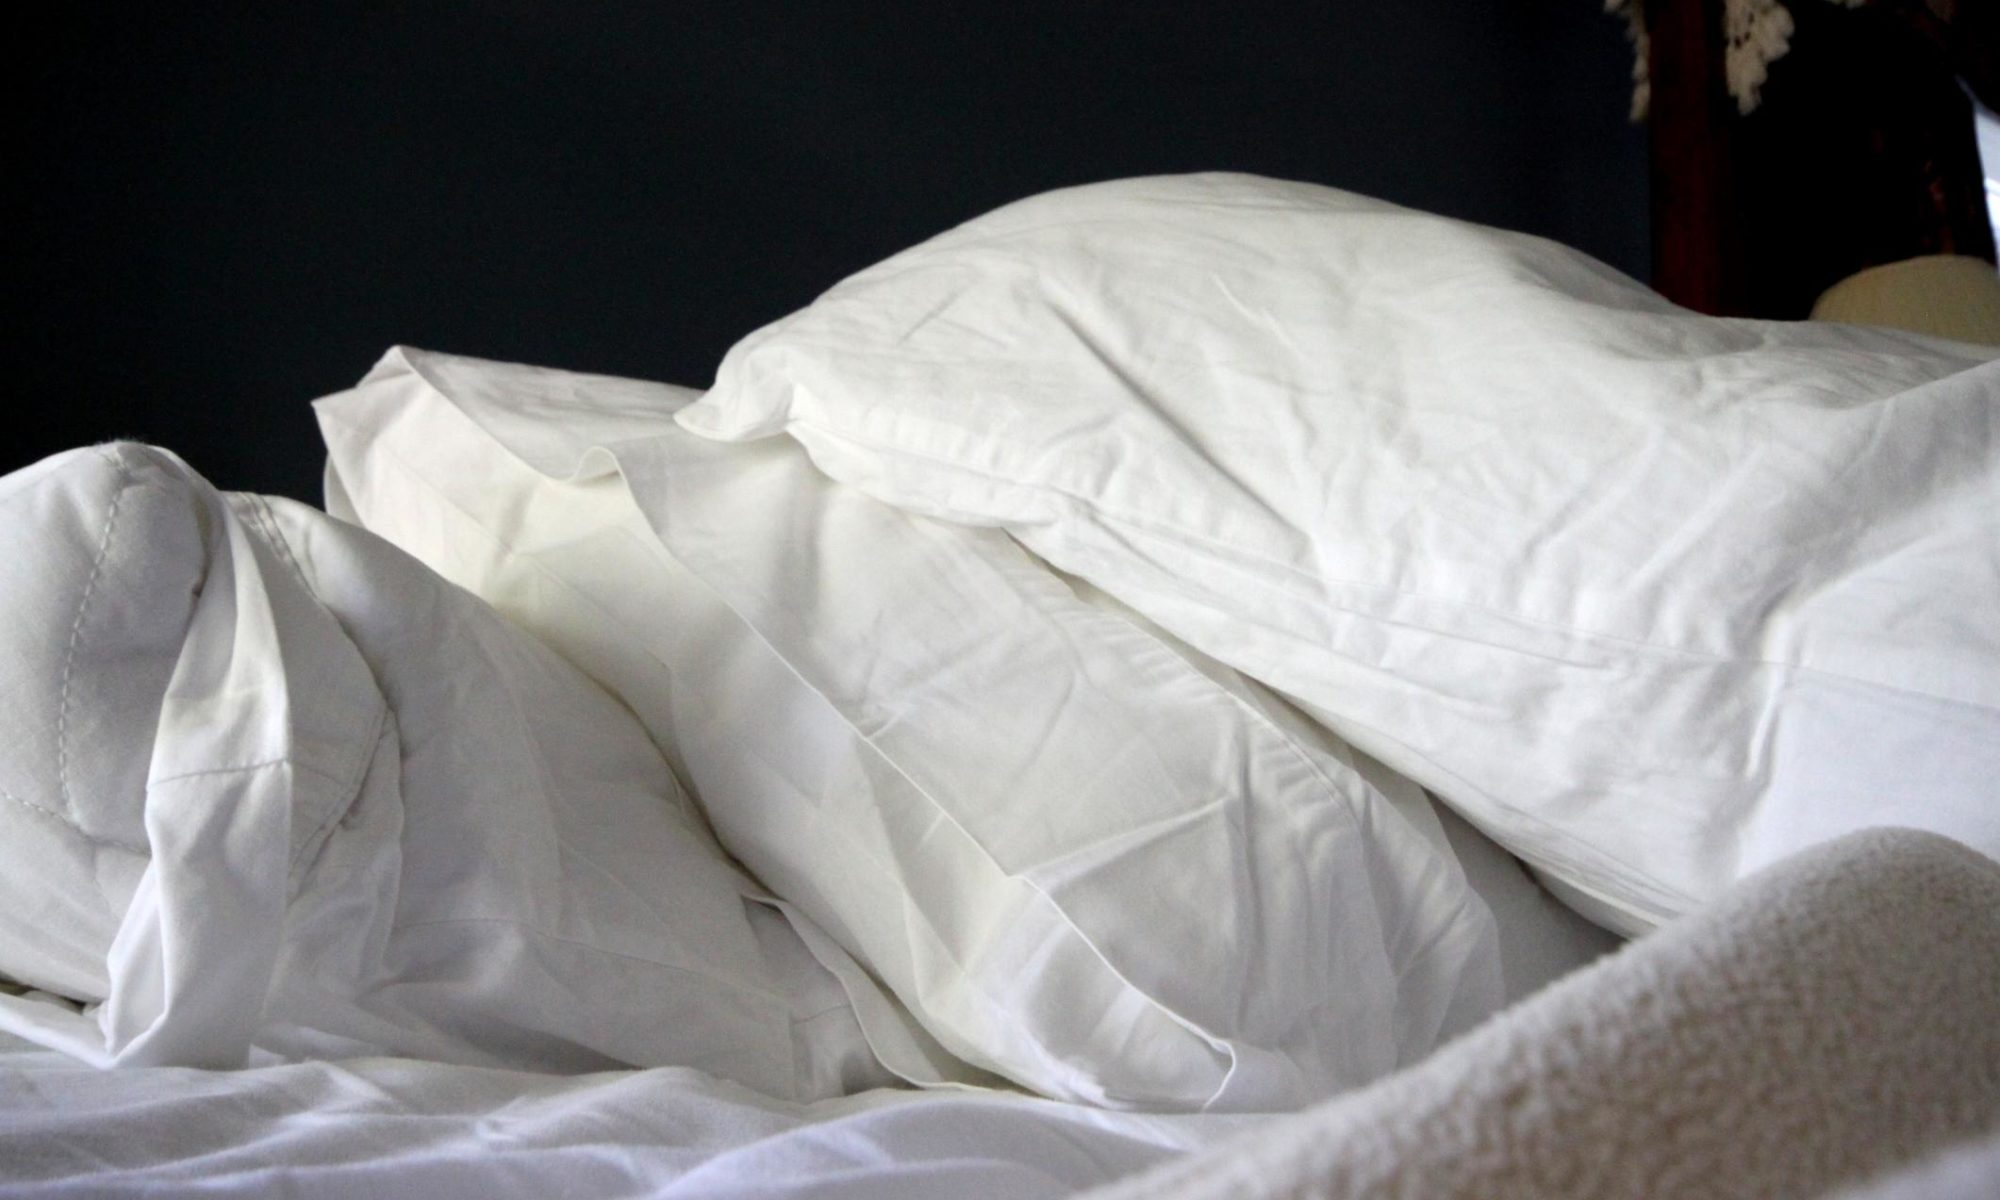 Dirty Linens and Pillows